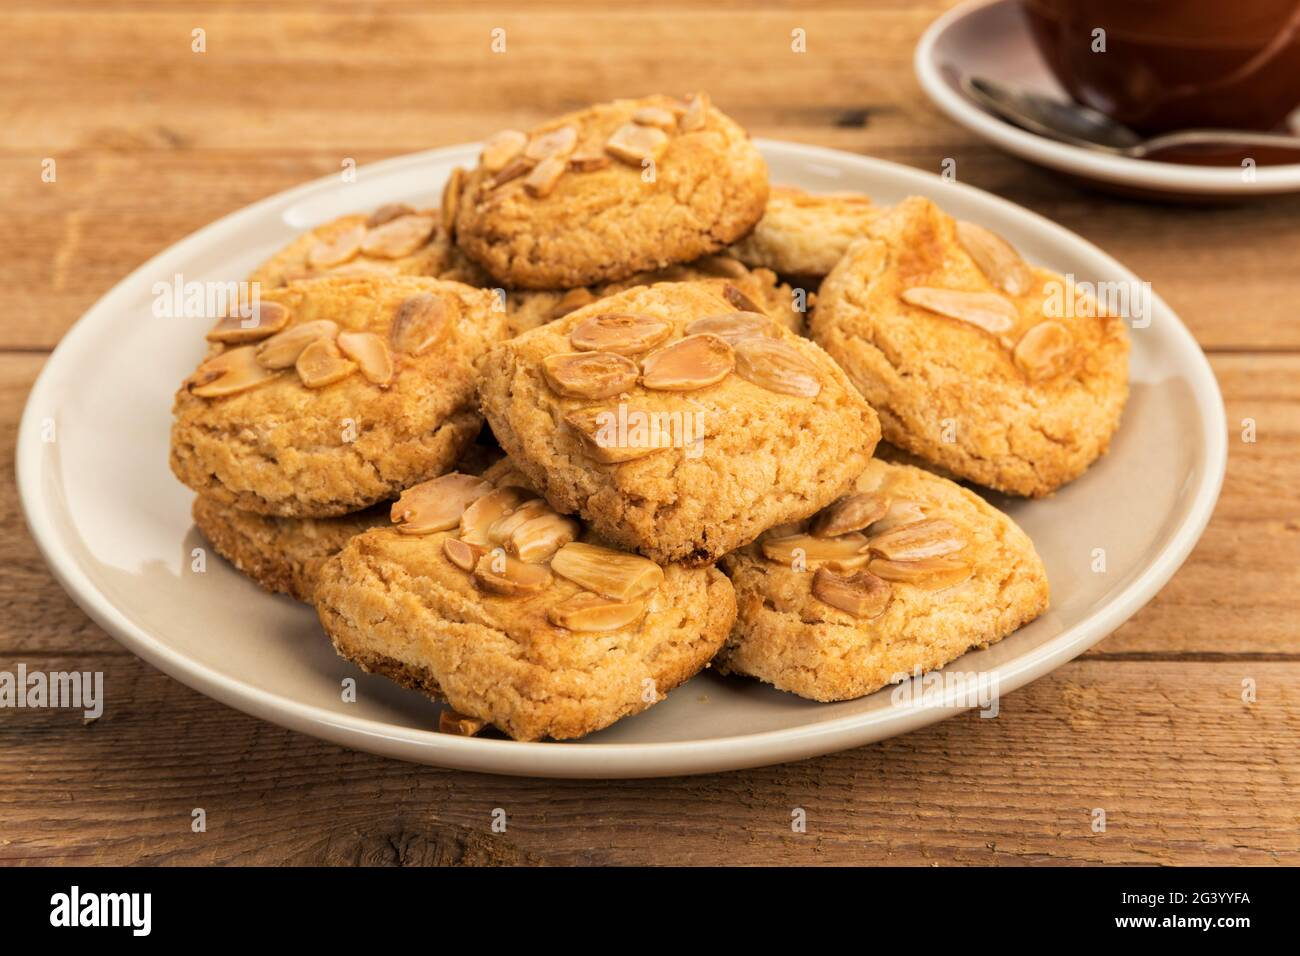 Spanish Almendrados biscuits with almonds on a plate, on rustic coffee table Stock Photo